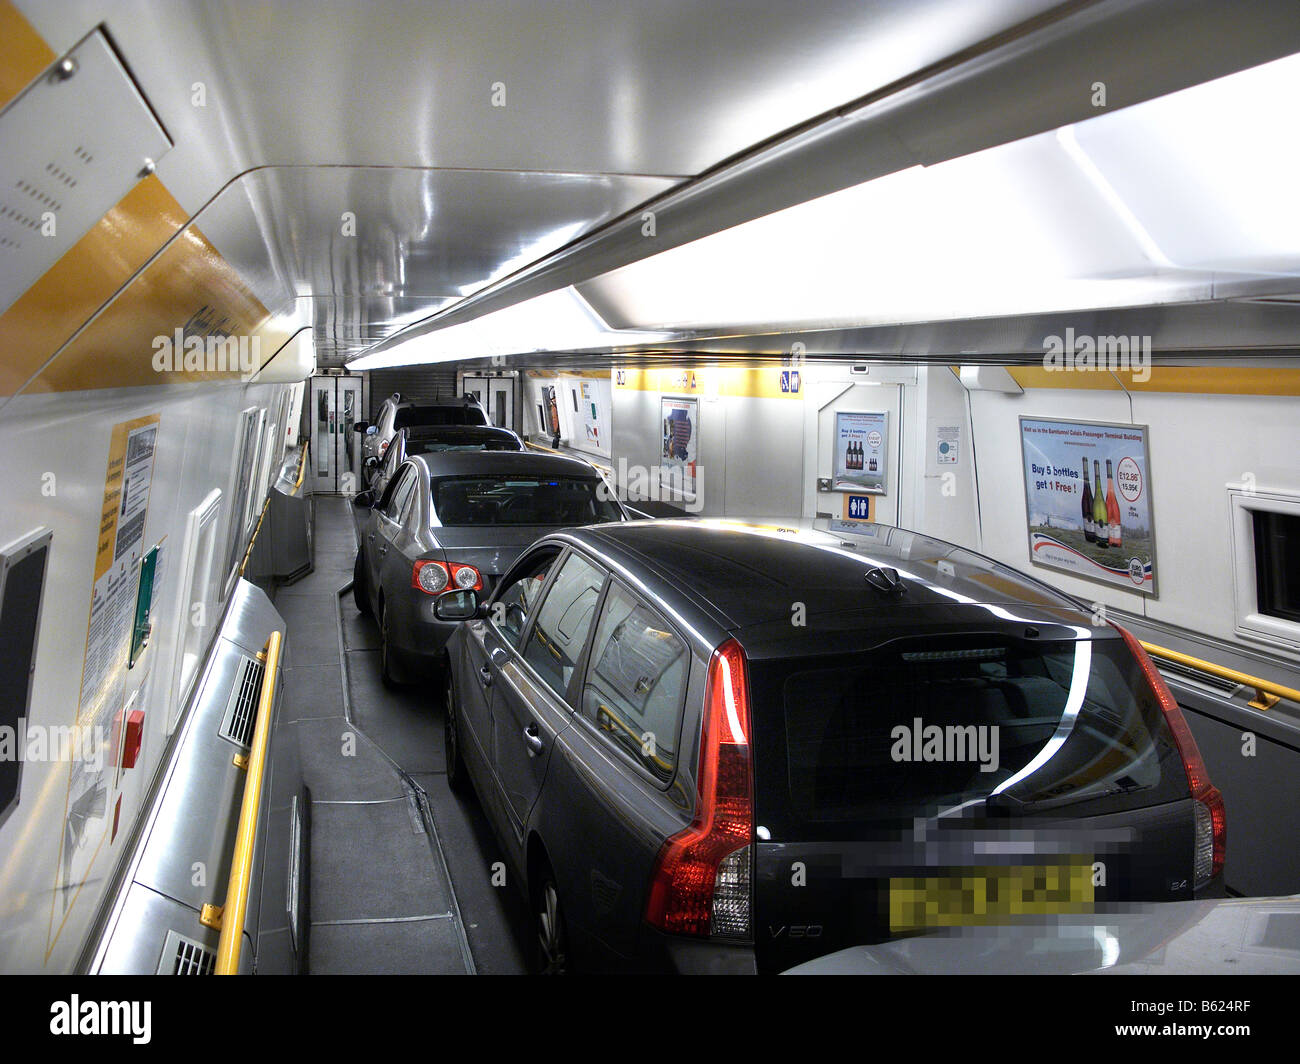 eurotunnel interior stock photo royalty free image 20946003 alamy. Black Bedroom Furniture Sets. Home Design Ideas